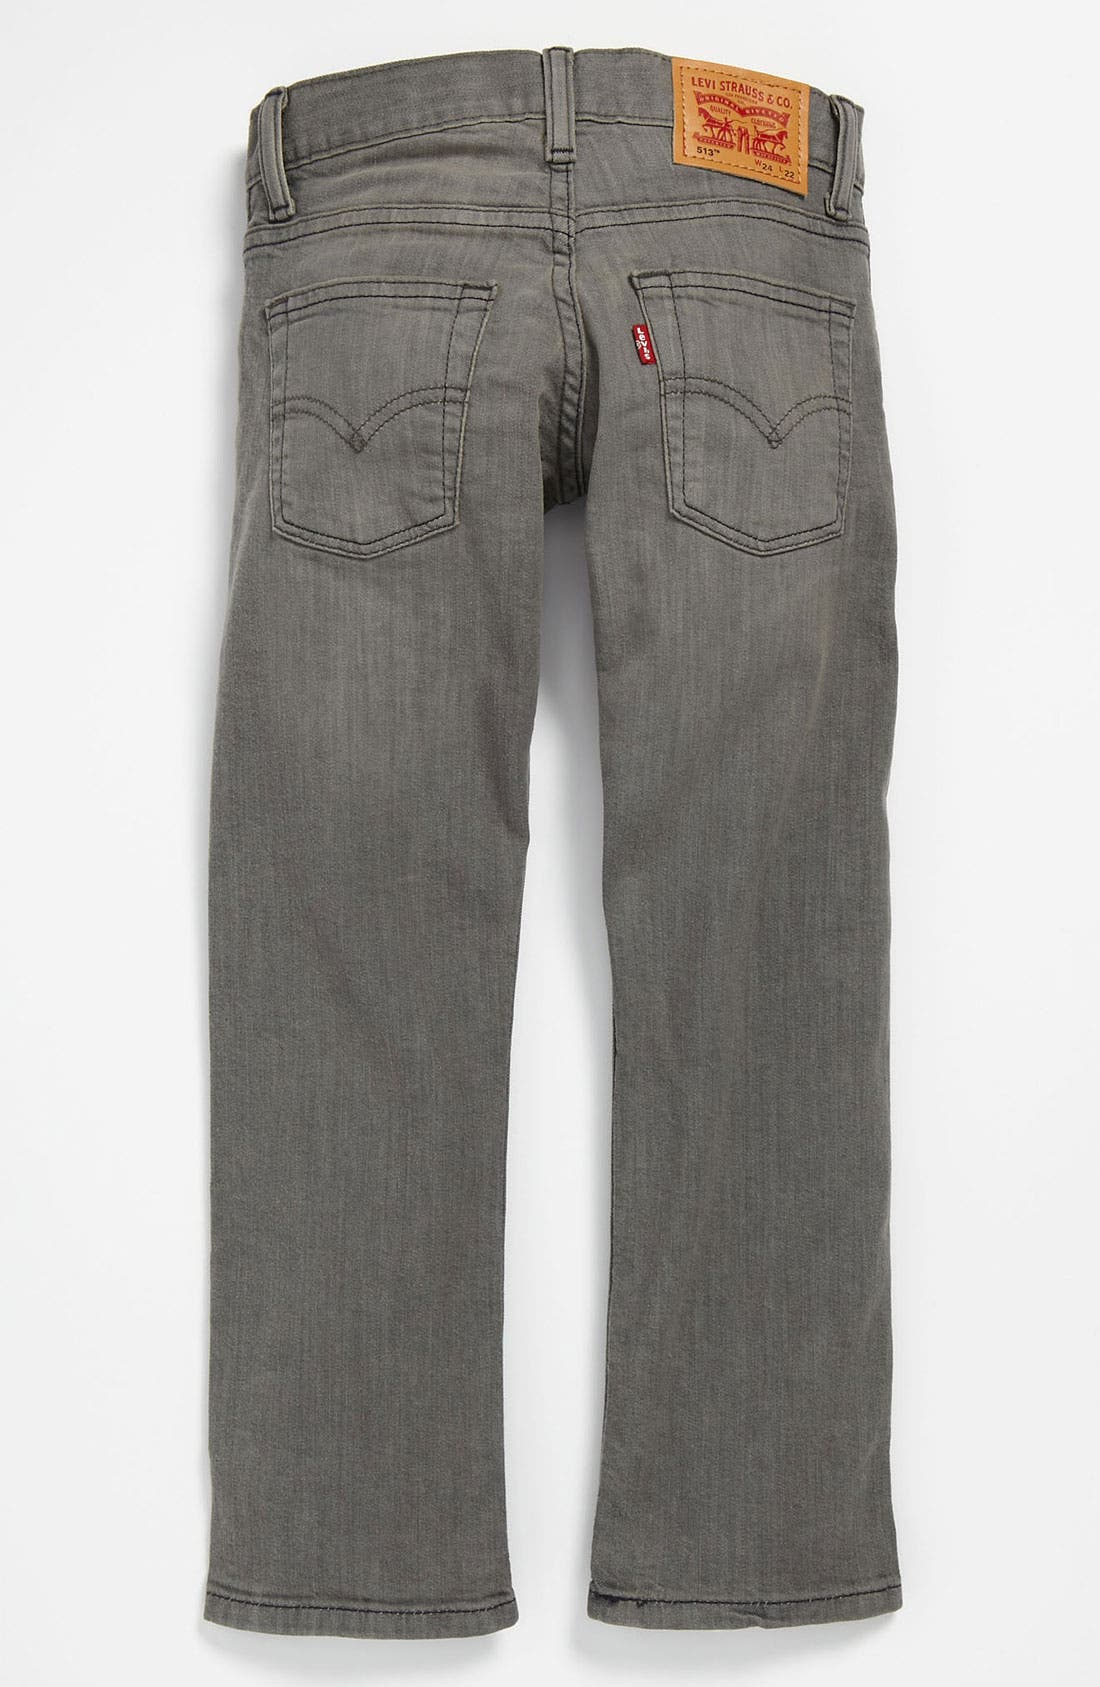 Alternate Image 1 Selected - Levi's® '513™' Slim Fit Jeans (Big Boys)